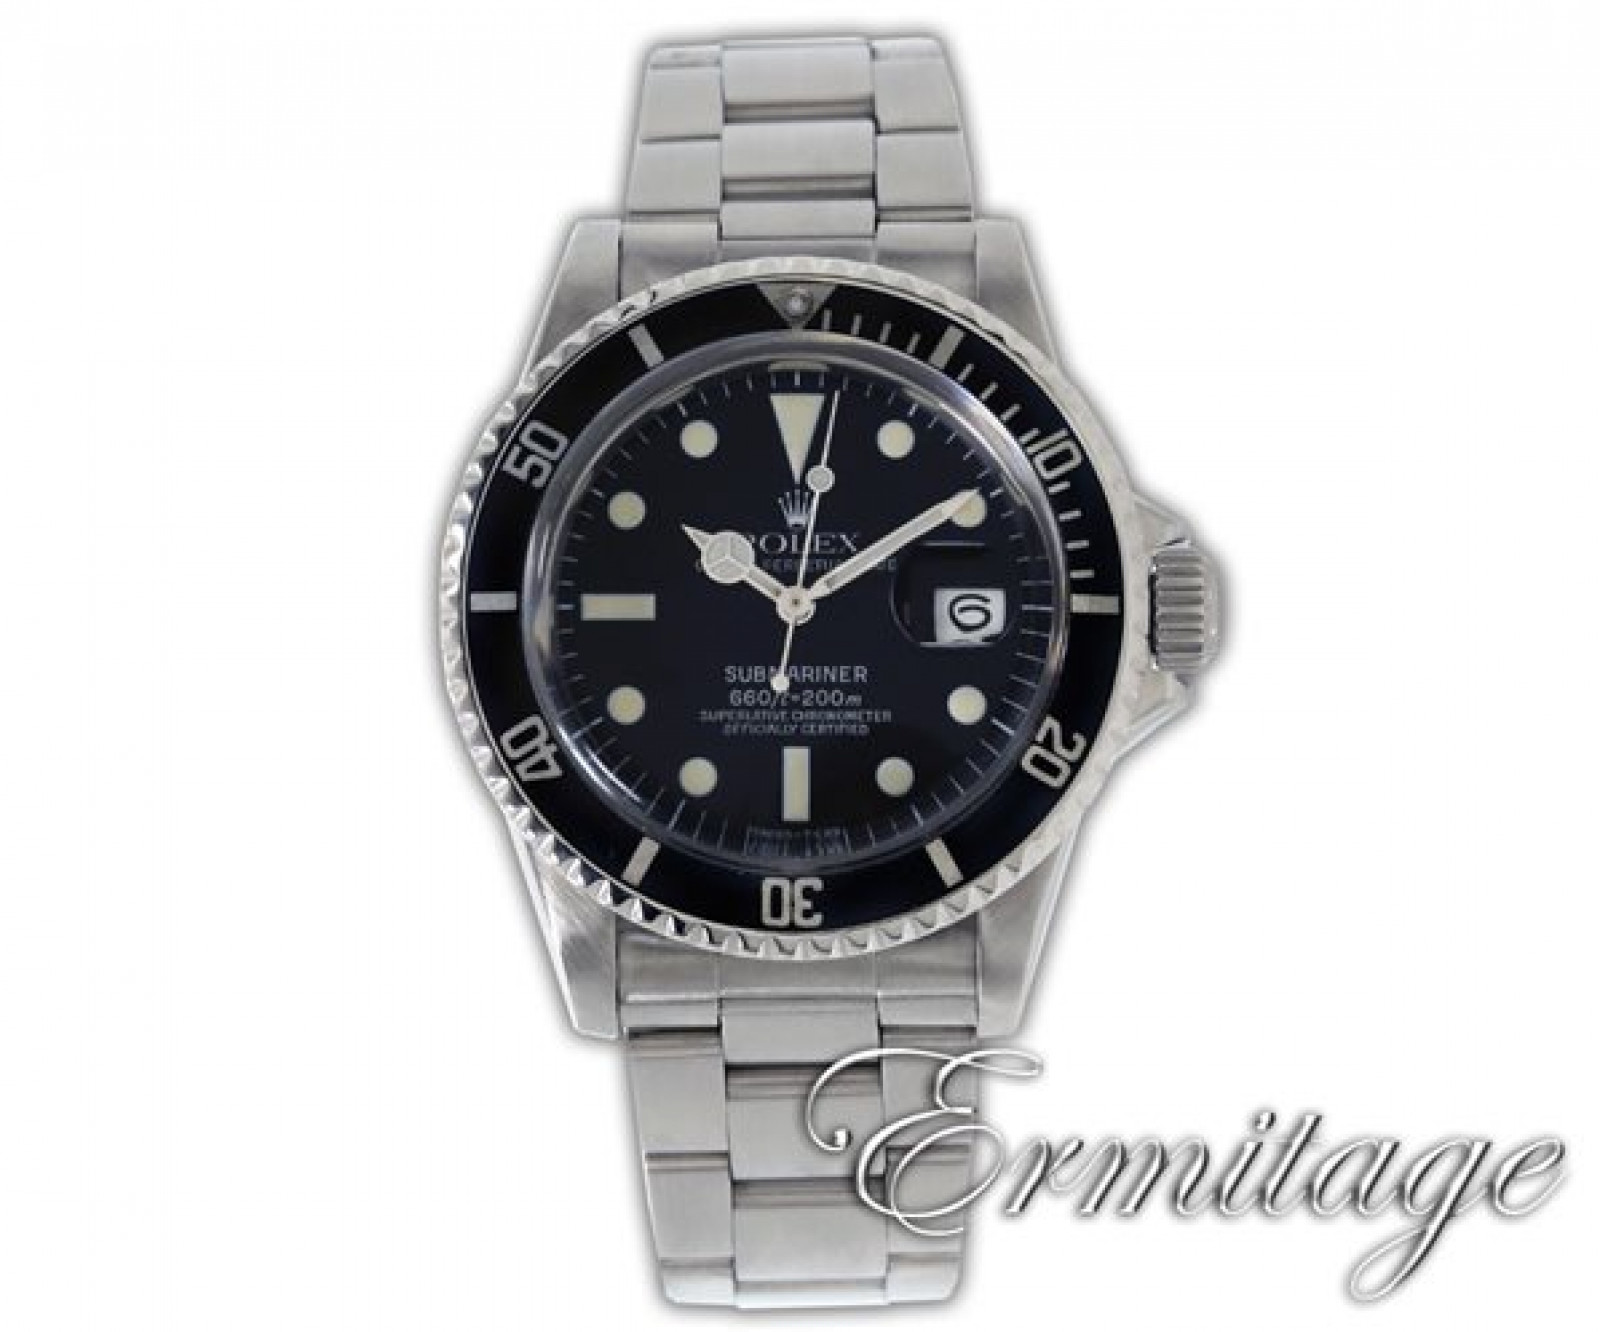 Vintage Rolex Submariner 1680 Steel 1970 with Black Dial